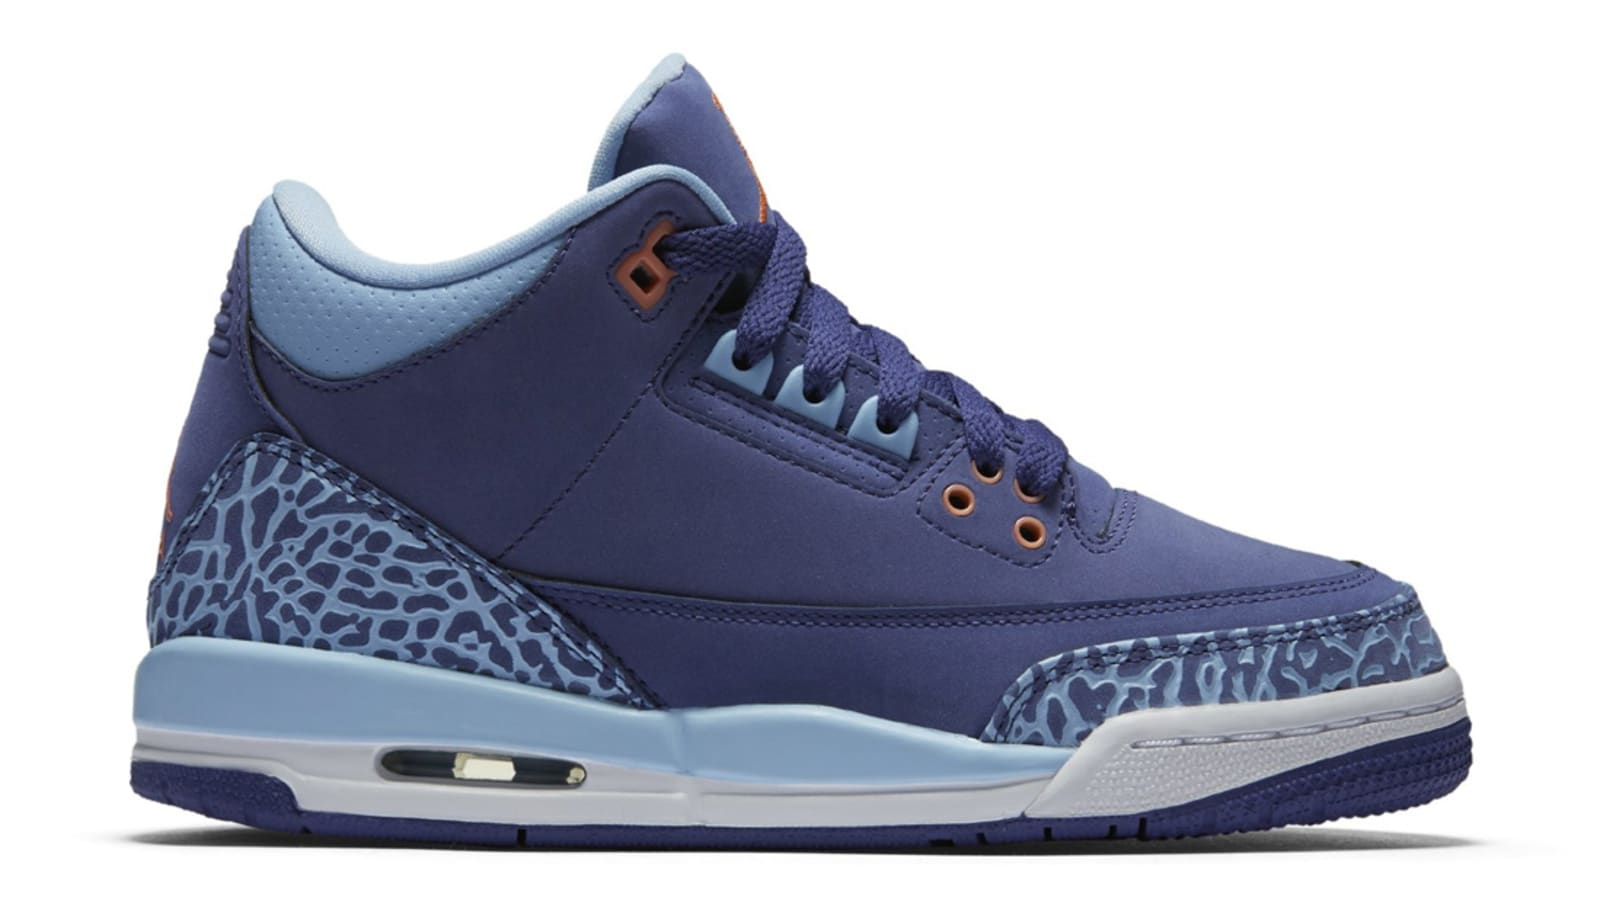 new styles e2a02 5c494 Air Jordan 3 Retro GS